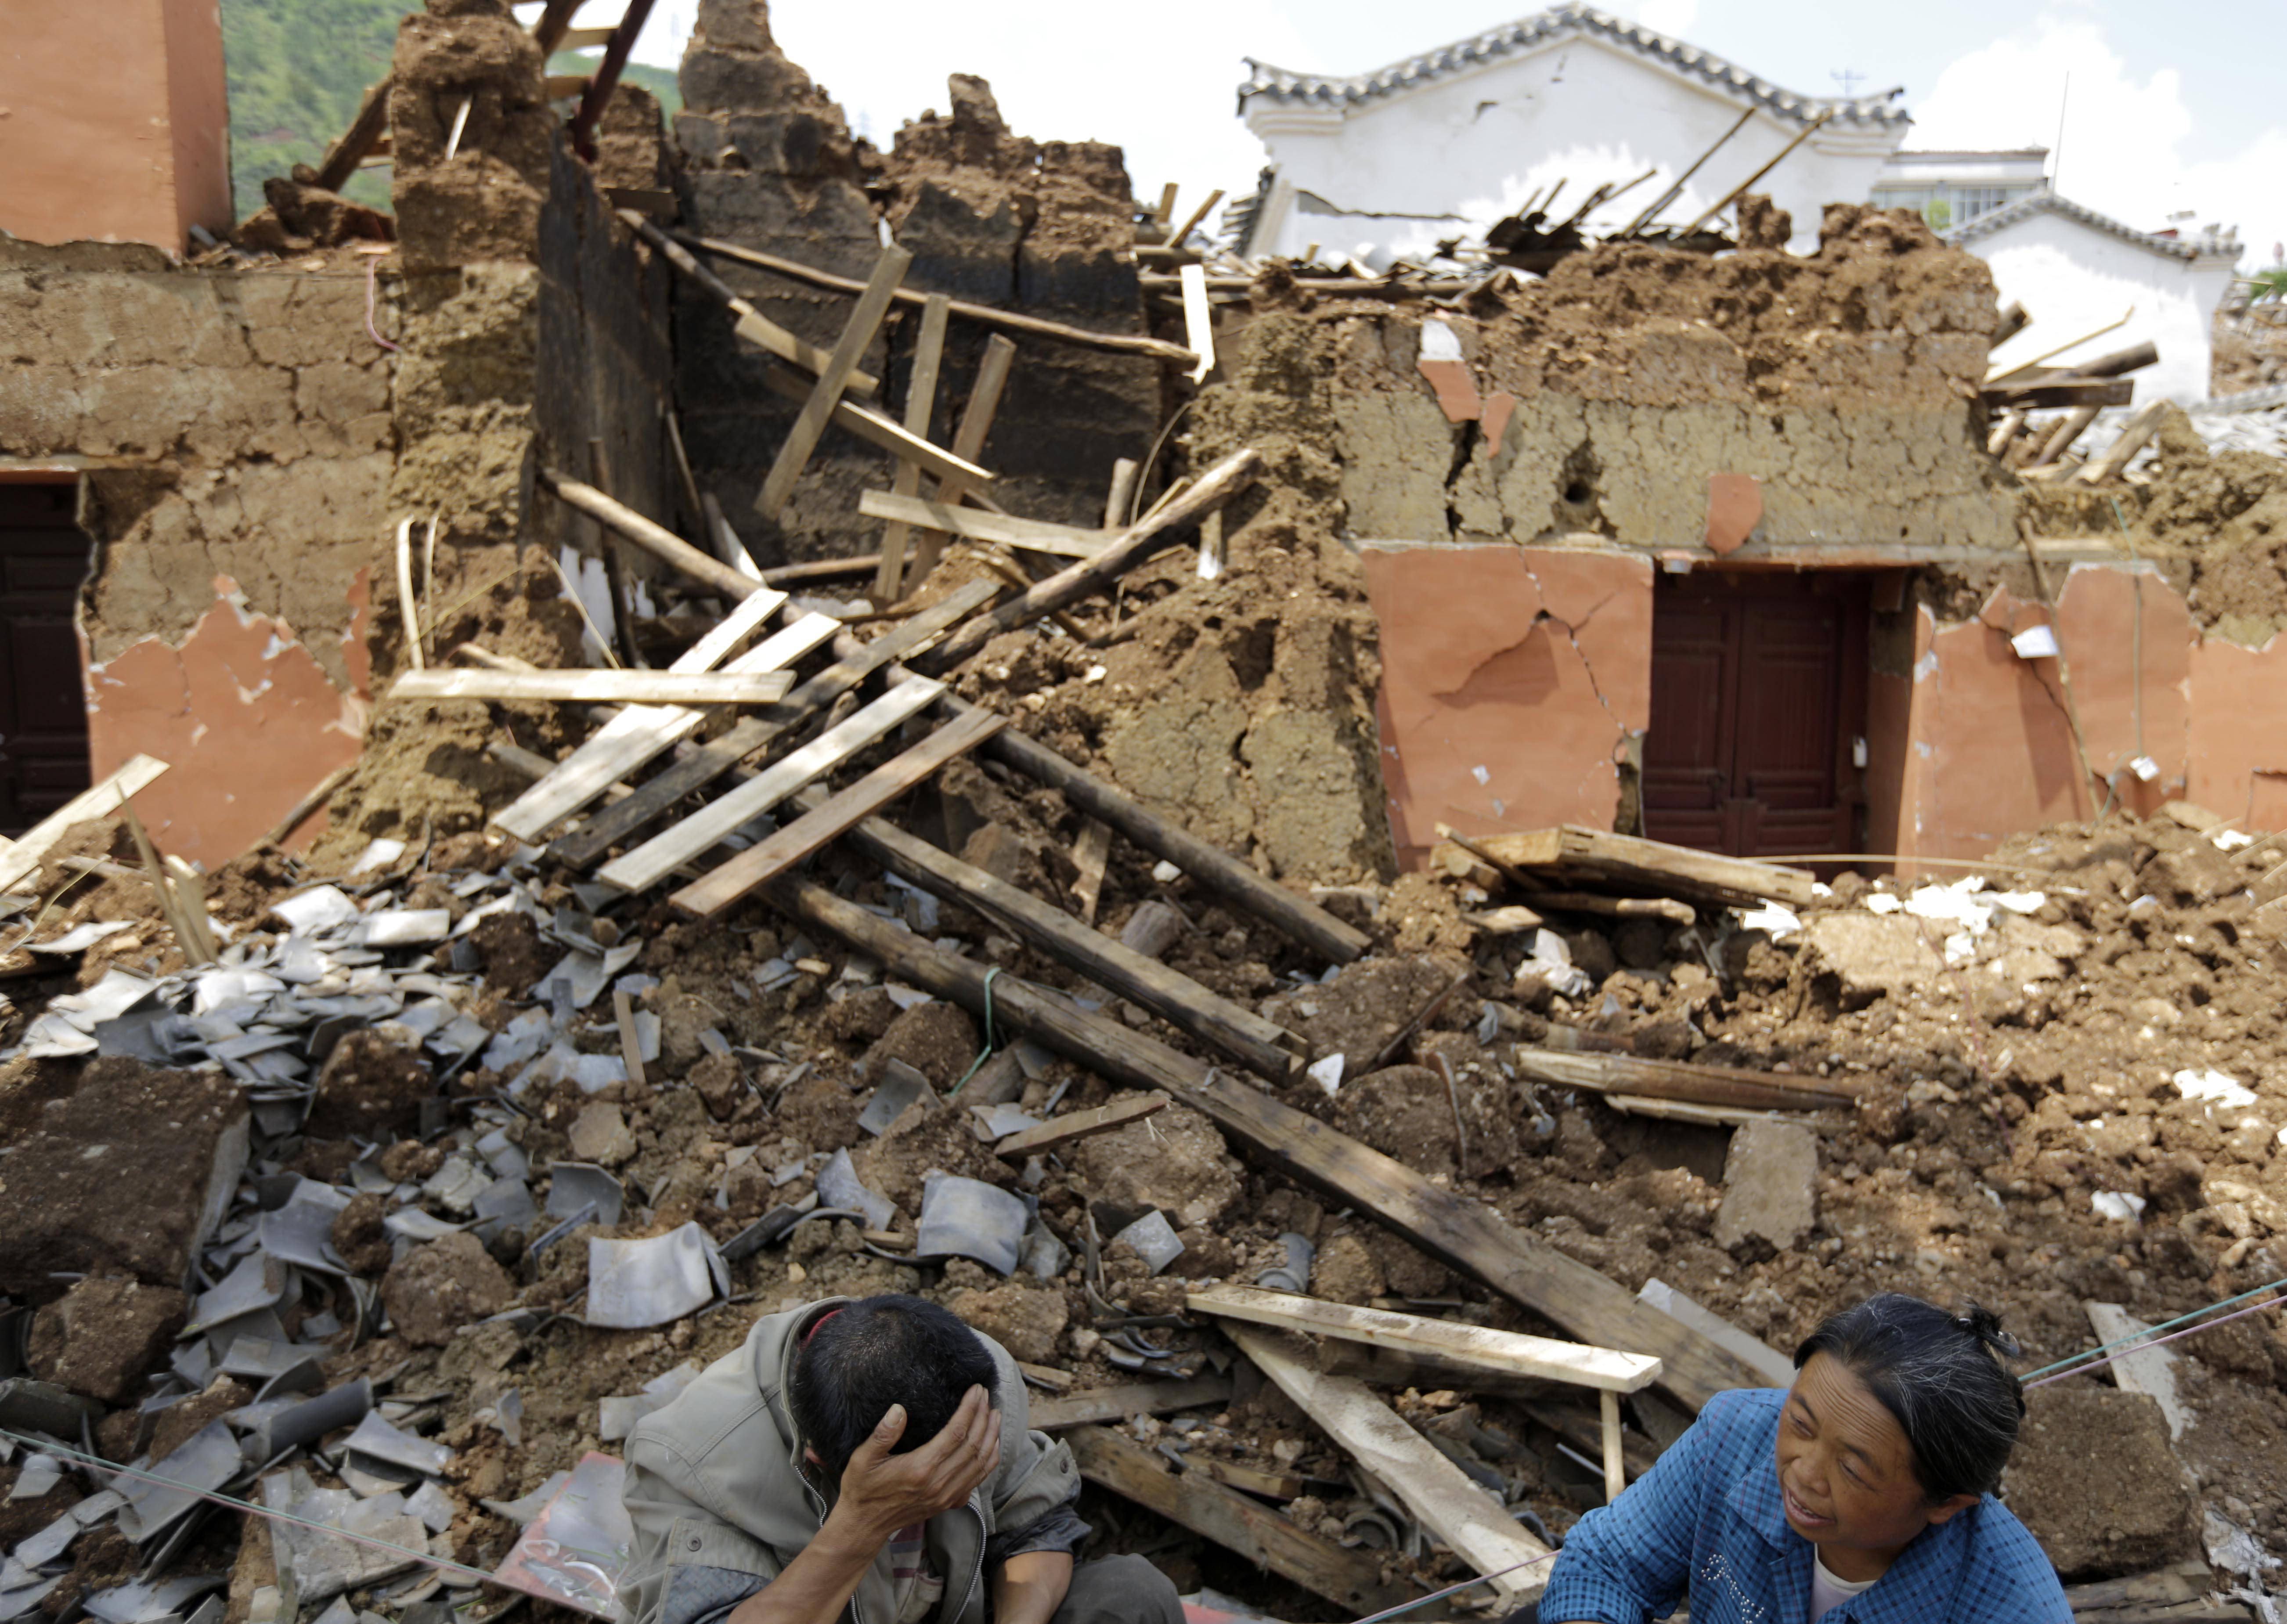 Villagers sit in front of their destroyed house Tuesday following a massive earthquake in the town of Longtoushan in Ludian County in southwest China's Yunnan Province. Rescuers raced Tuesday to evacuate villages near rising lakes formed by landslides, complicating relief efforts following a strong earthquake in southern China that killed more than 300 people and has left thousands homeless.